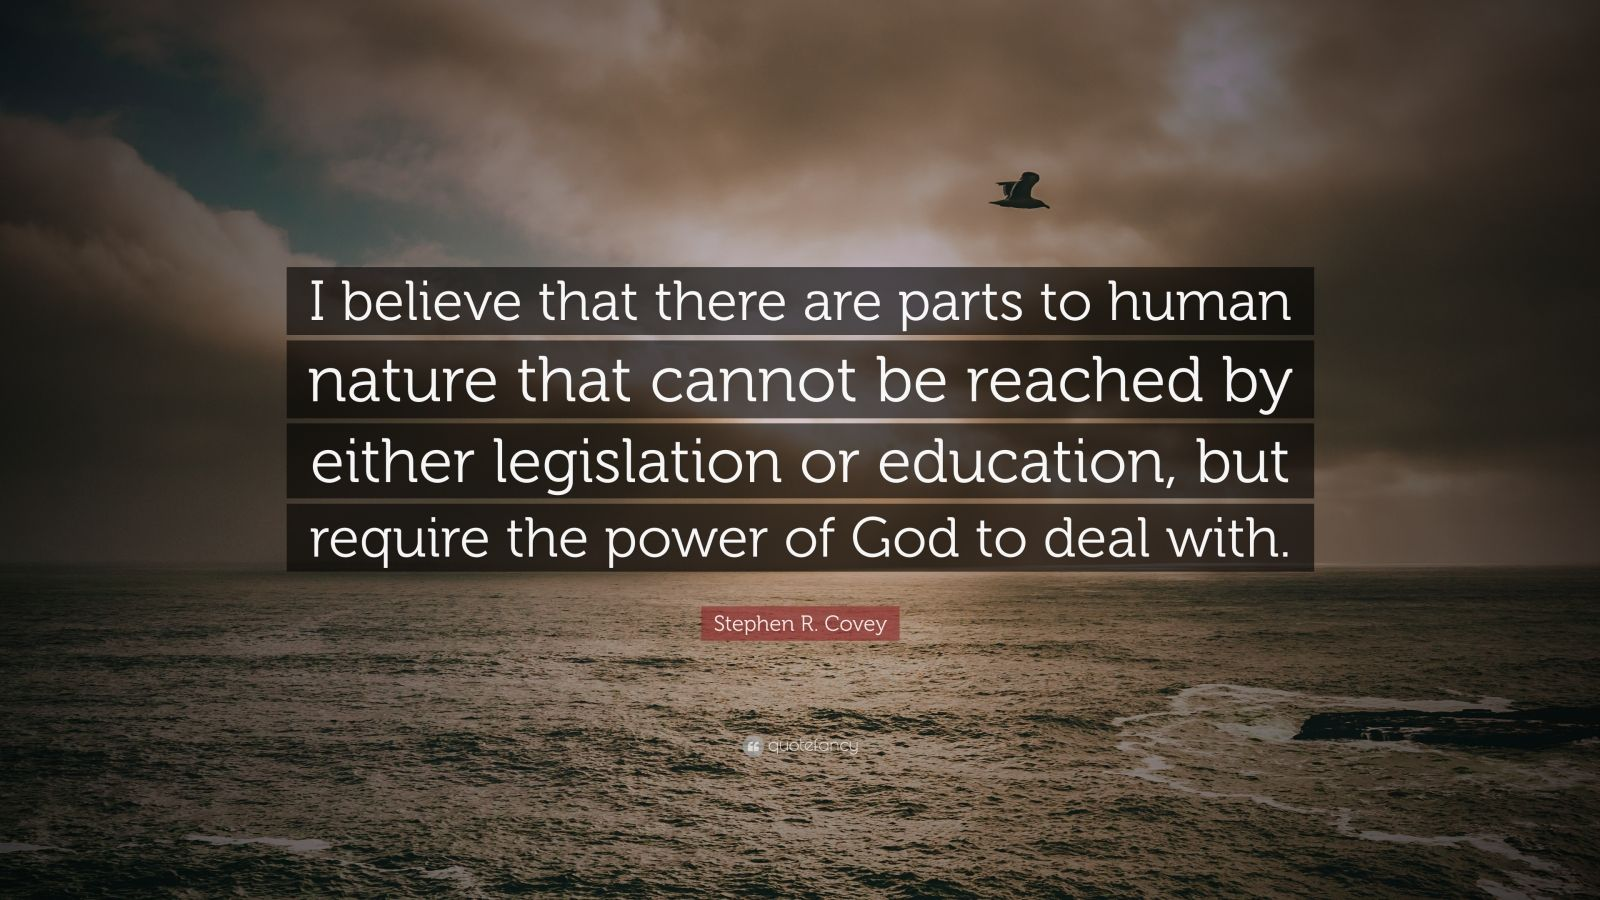 """Stephen R. Covey Quote: """"I believe that there are parts to human nature that cannot be reached by either legislation or education, but require the power of God to deal with."""""""